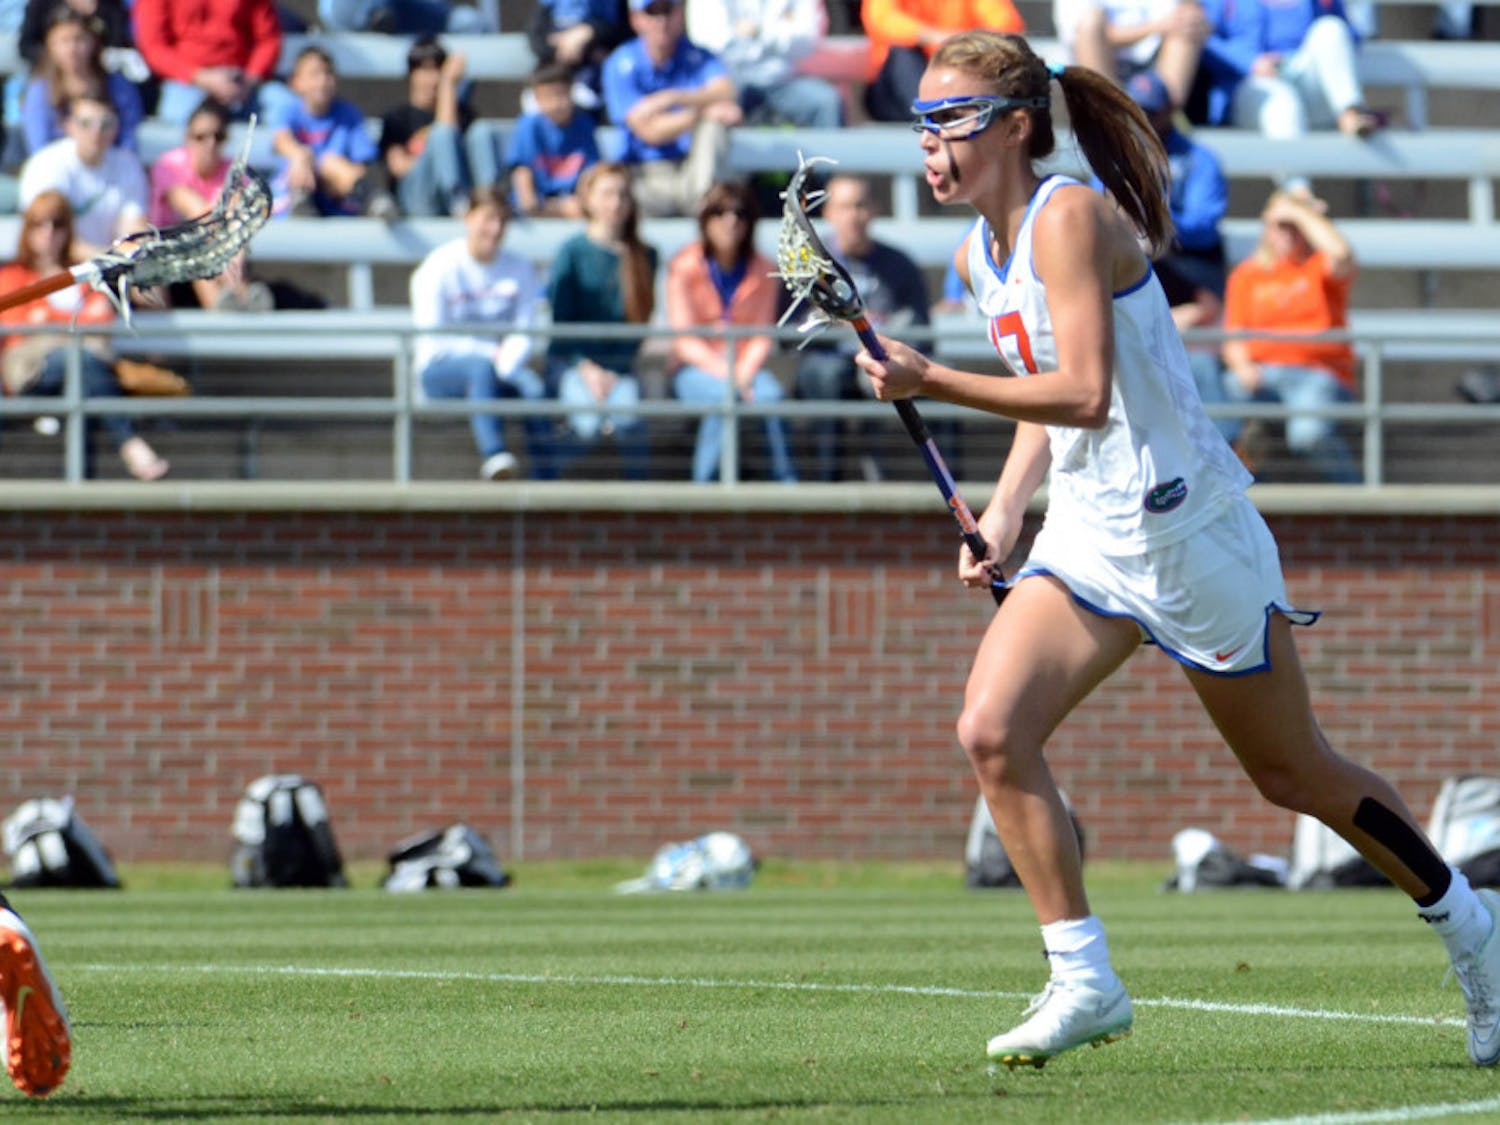 Sophomore midfielder Mollie Stevens runs down the field during UF's 17-11 loss to UNC on Saturday at Donald R. Dizney Stadium.